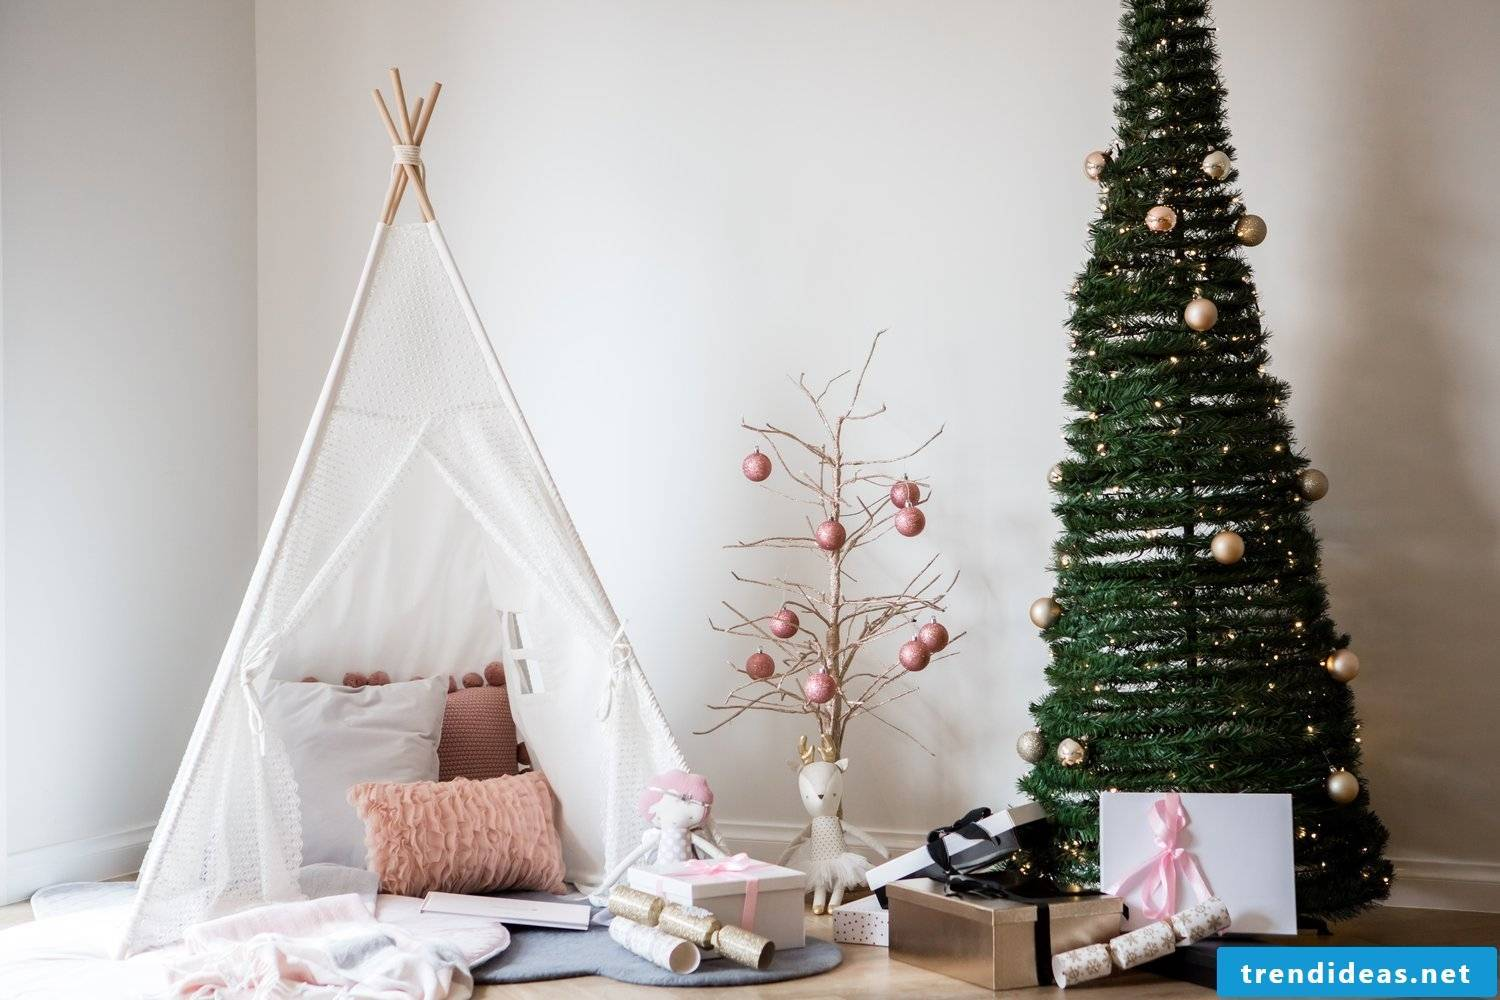 Read our cool sewing ideas for beginners for a teepee tent - a real oasis of well-being, where your child will feel safe, happy and free.